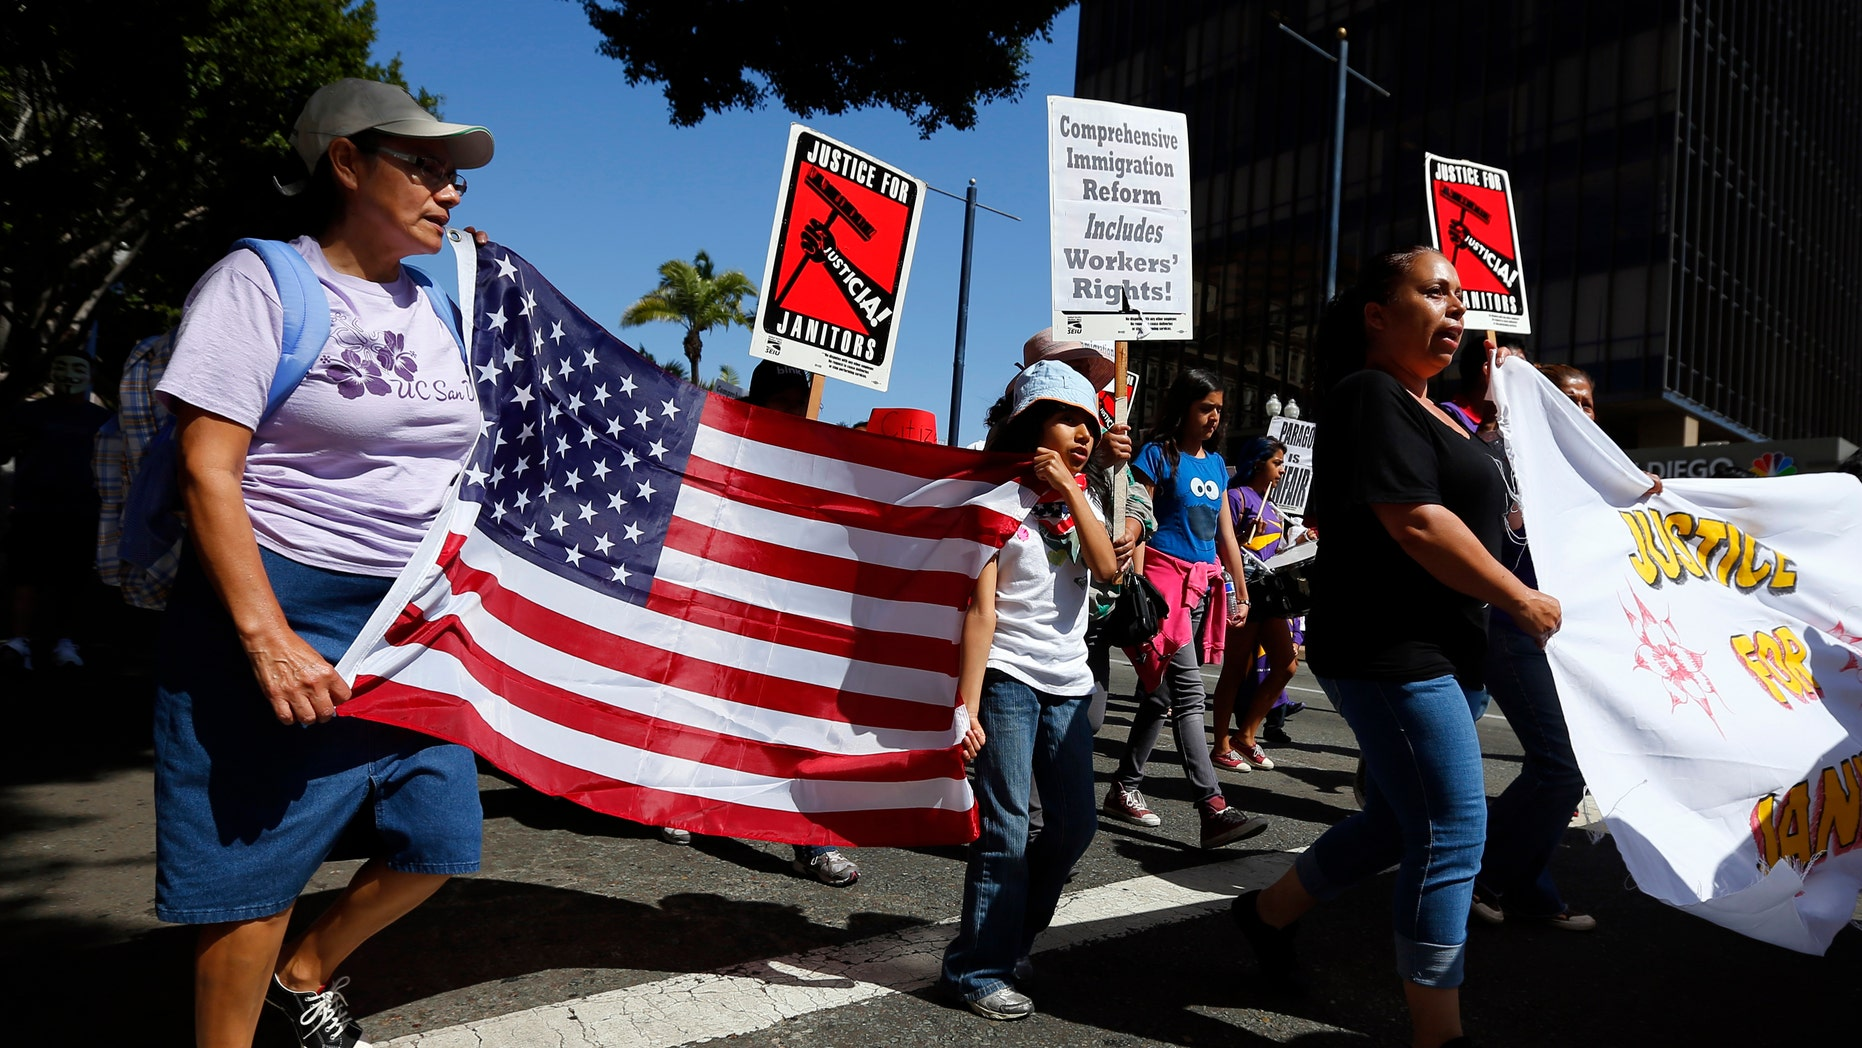 People march through the streets during a May Day demonstration in San Diego, California May 1, 2013.